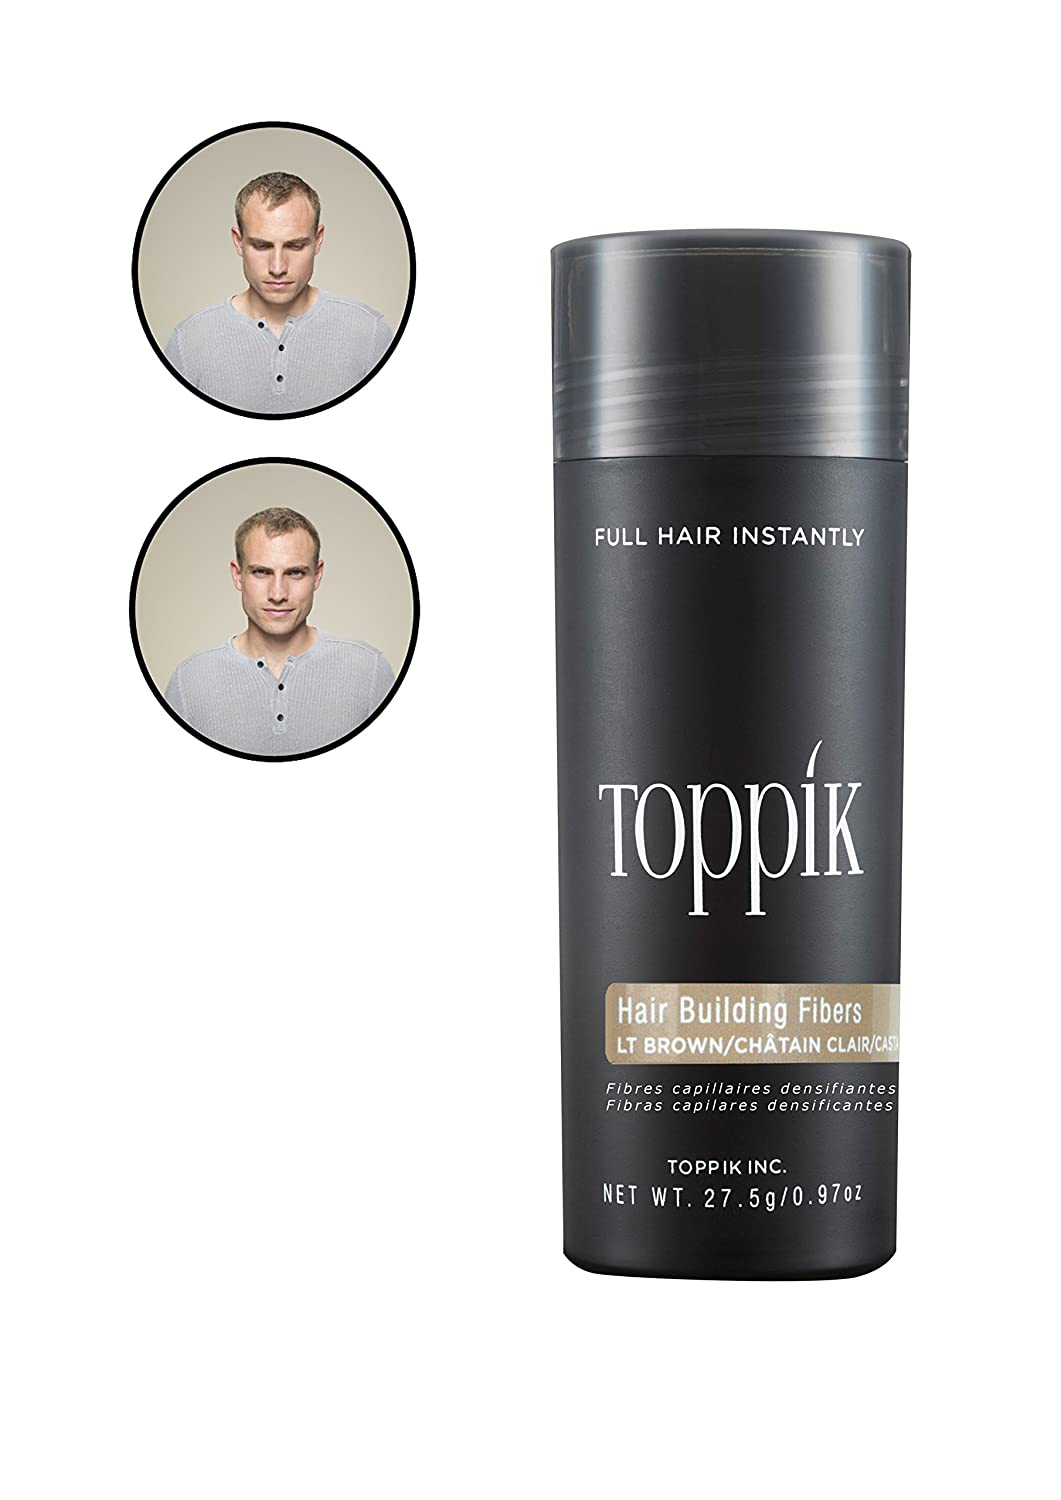 Toppik Hair Building Fibres for Instantly Fuller Hair, Gray, 27.5-g TOWIR EPG12A